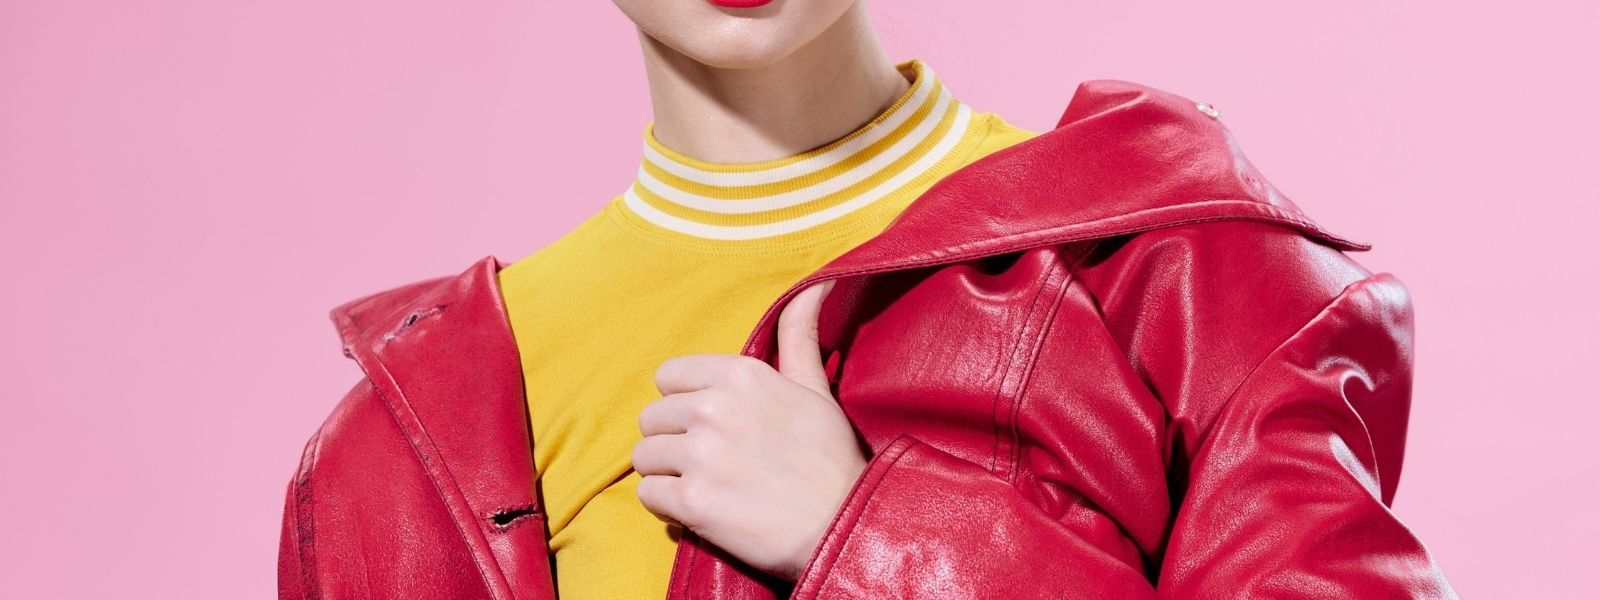 Vegan leather vs real leather: which is more sustainable?